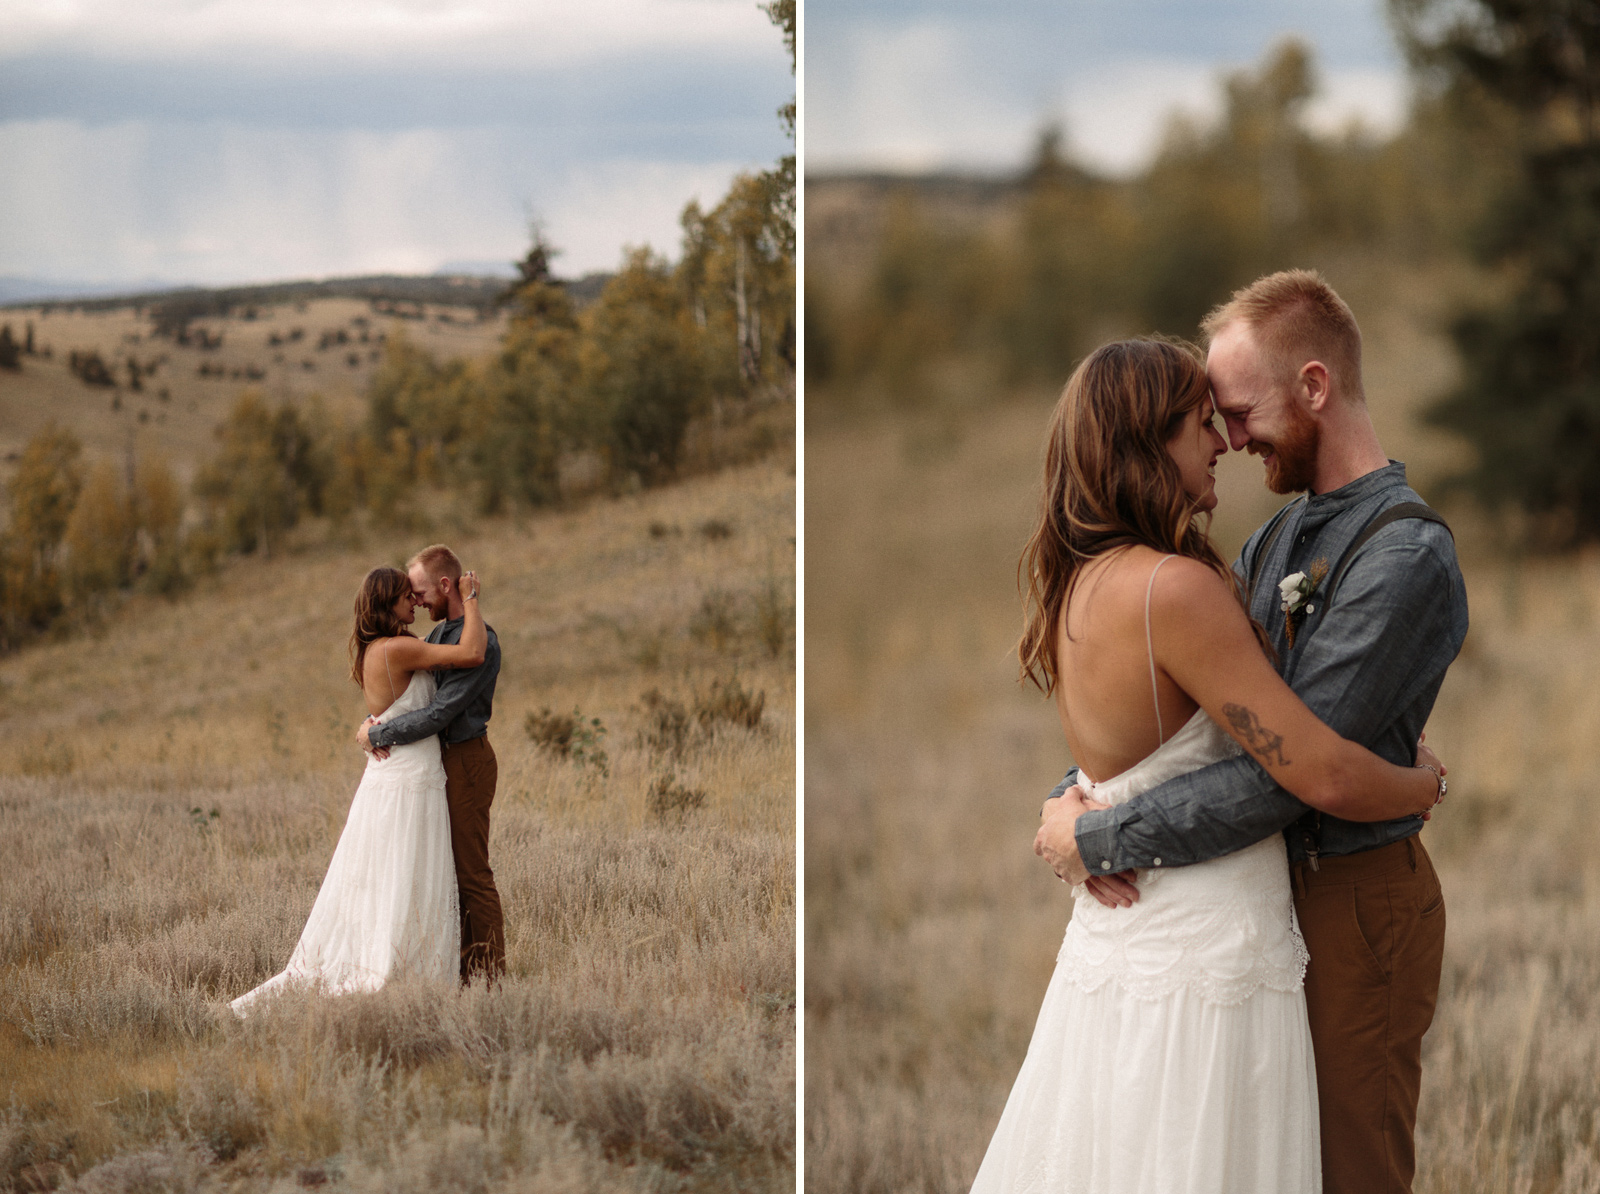 Jefferson-Colorado-Wedding-Photographer-Candice-and-TJ-70.jpg